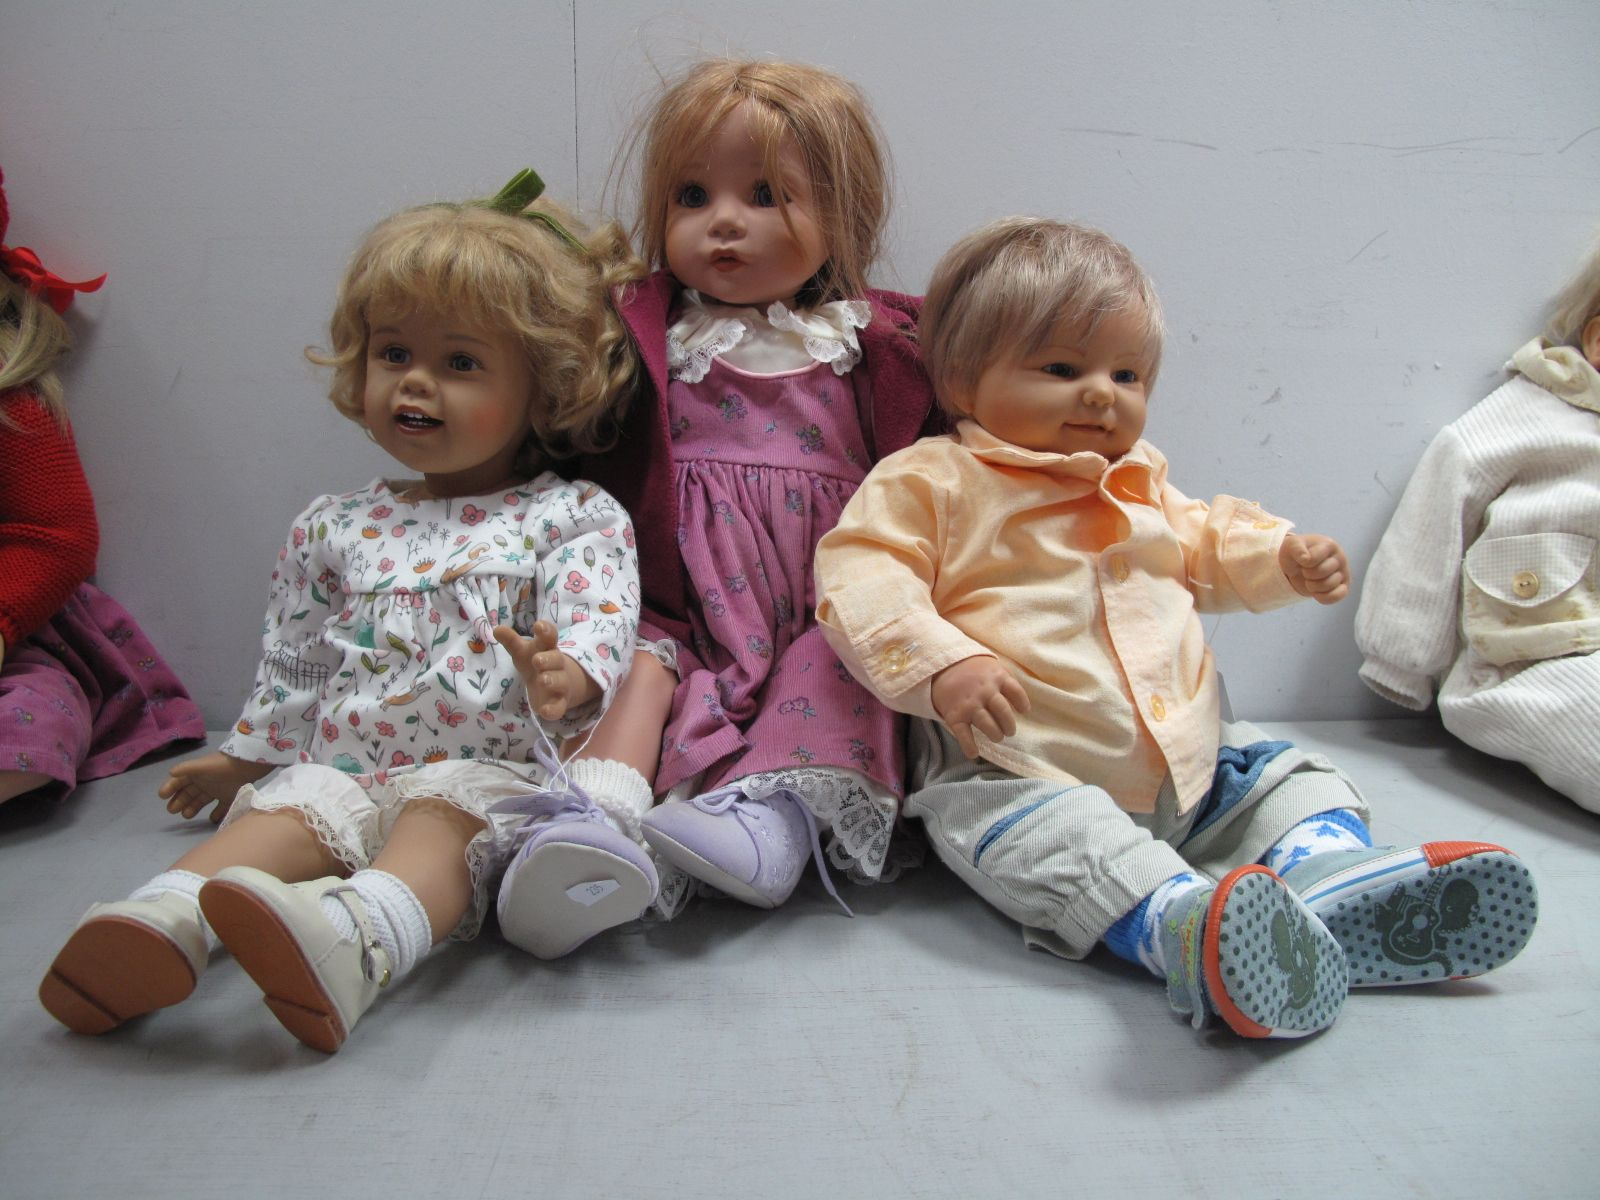 A Gotz Doll, marked indistinctly, 55cm high, a doll Celia impressed GC904, 62cm highand another doll